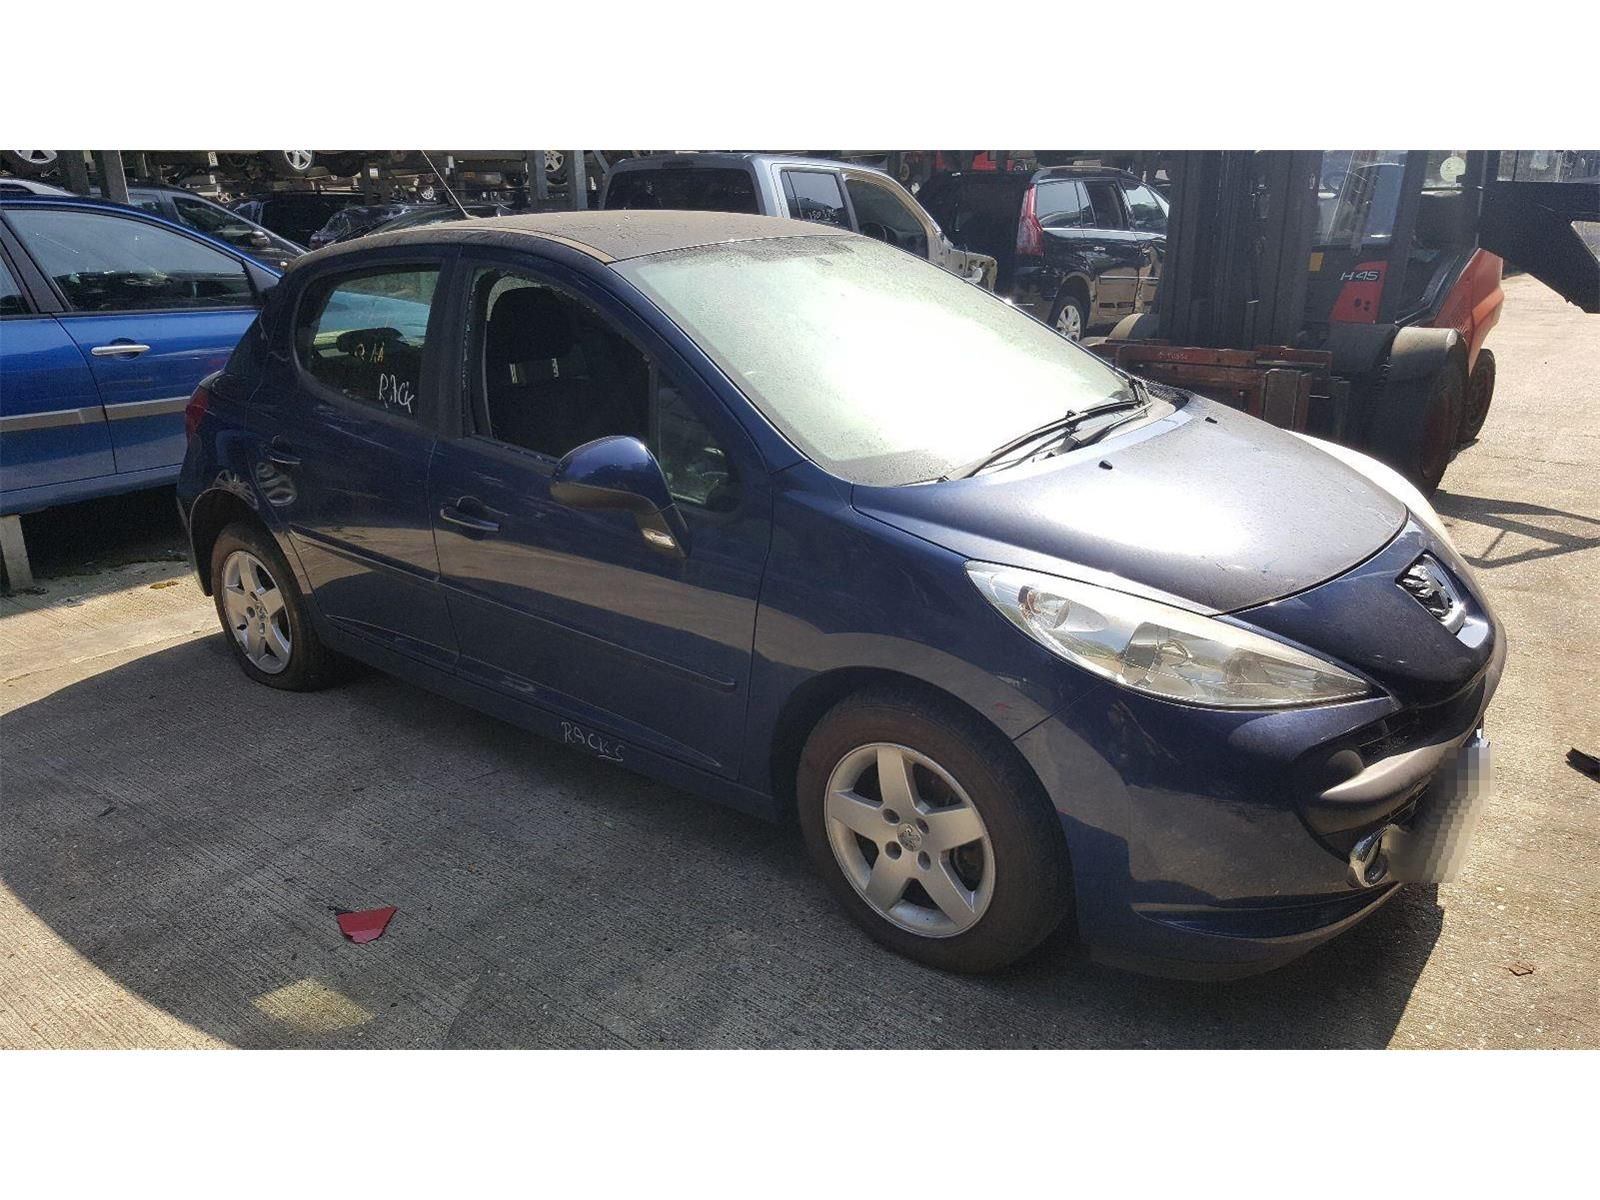 Peugeot 207 2006 To 2009 Sport 5 Door Hatchback Scrap Salvage 307 Fuse Box Location Car For Sale Auction Silverlake Autoparts